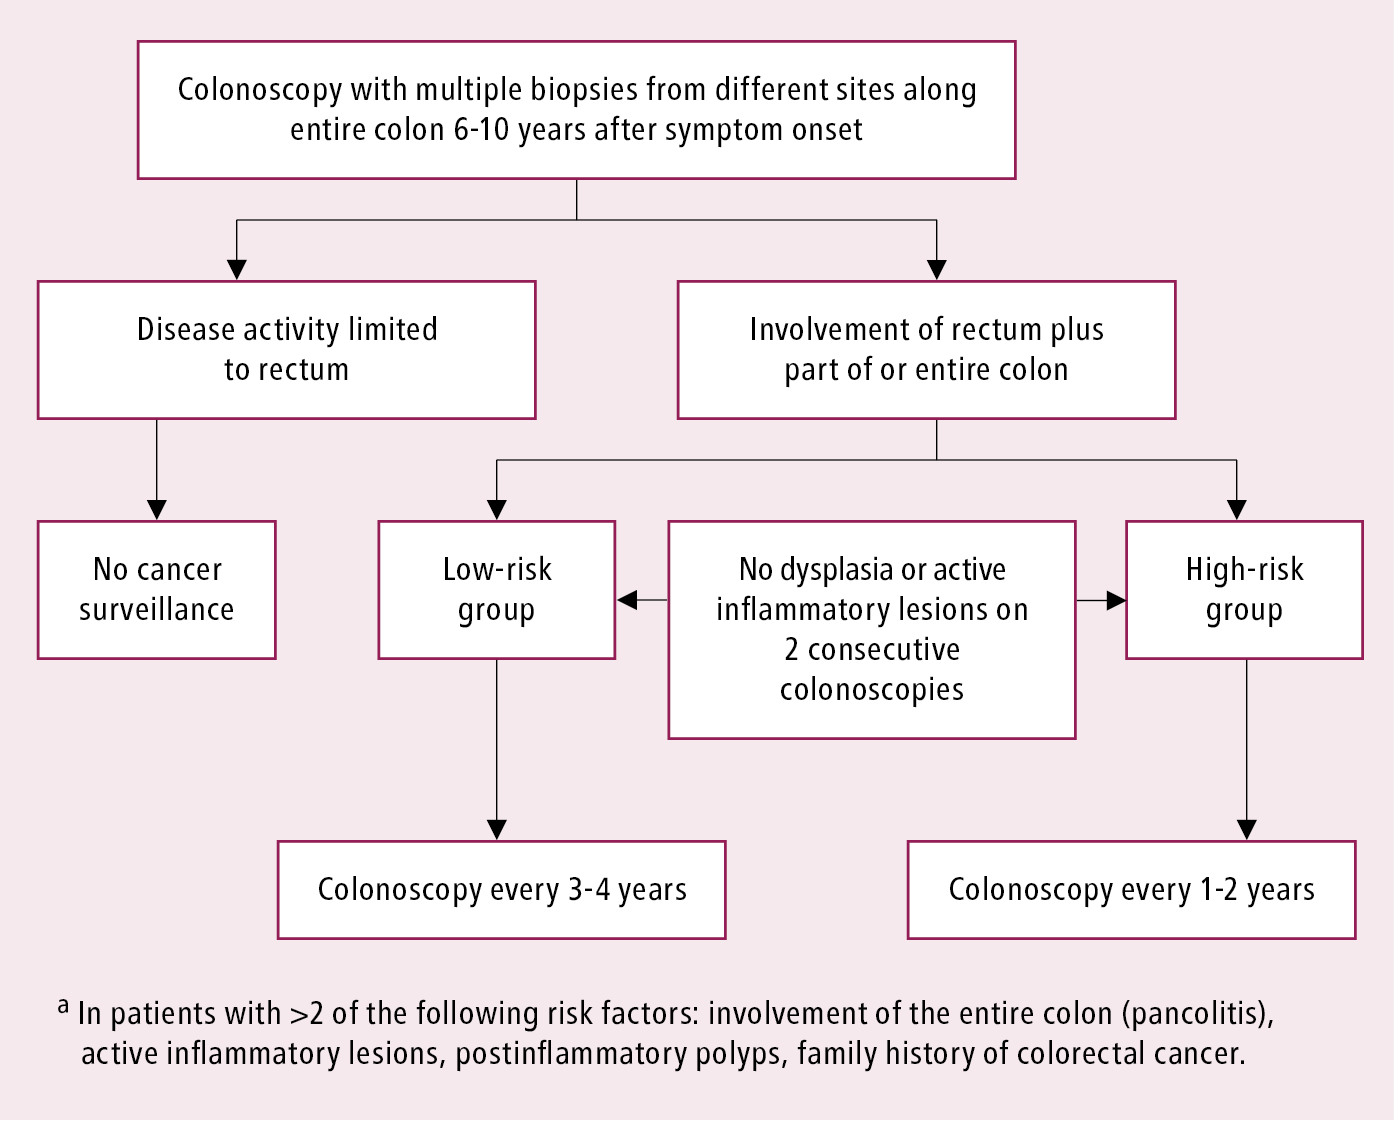 Figure 031_1_3512.  Cancer surveillance in patients with ulcerative colitis.  Based on the 2012 European Crohn's and Colitis Organisation guidelines (see Additional Information for details).